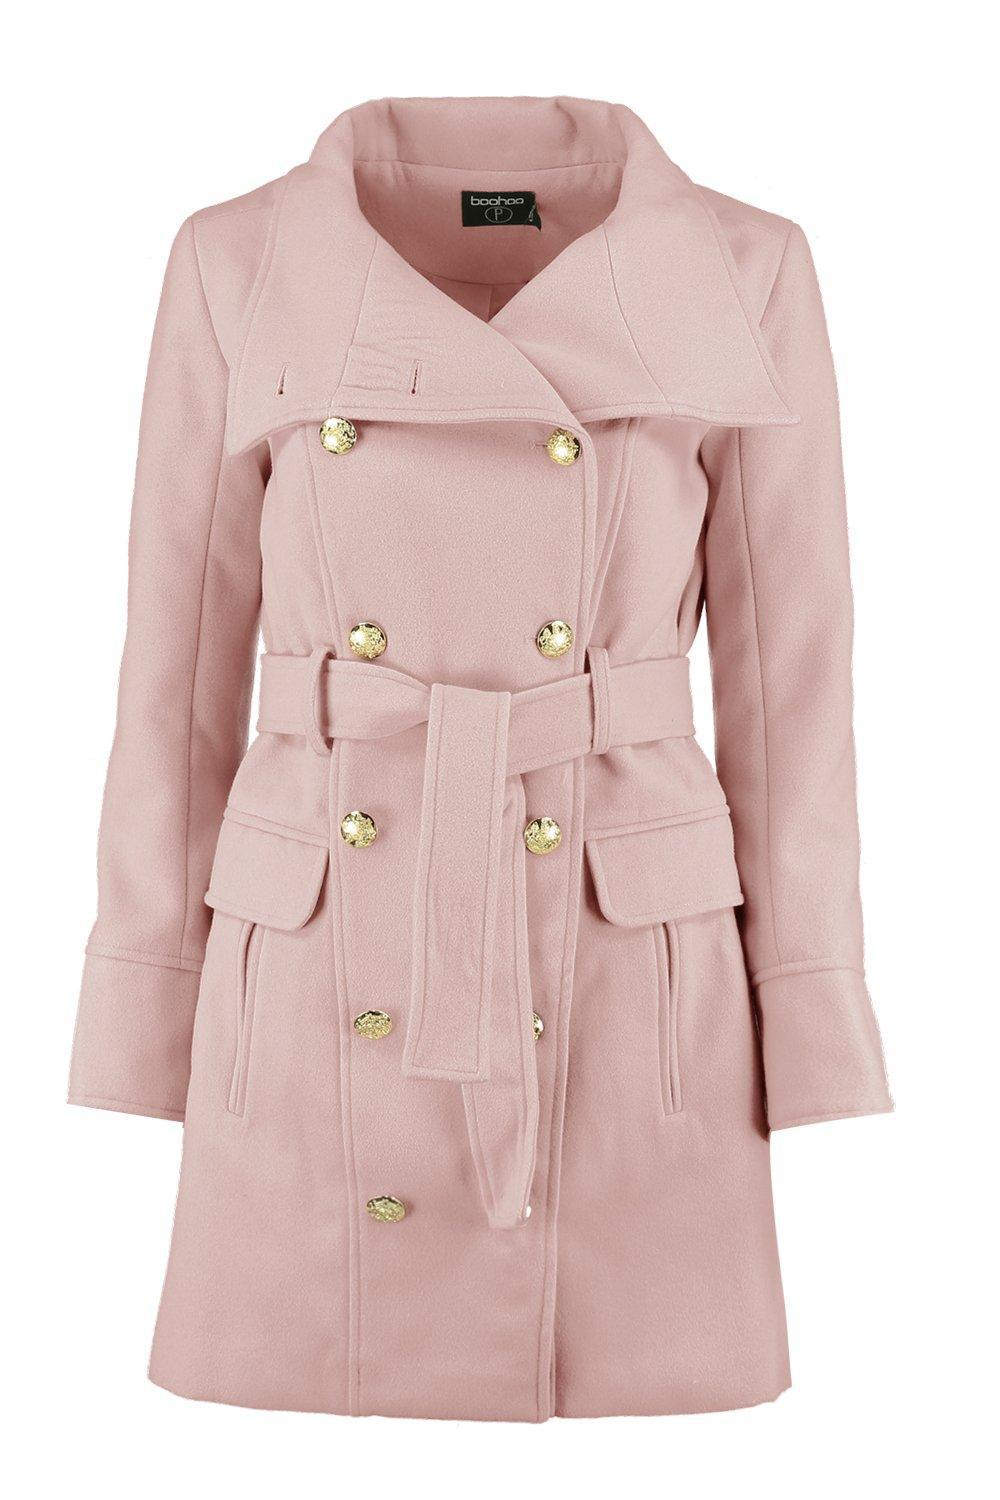 Boohoo Petite Patsy Funnel Neck Belted Military Coat in Pink | Lyst